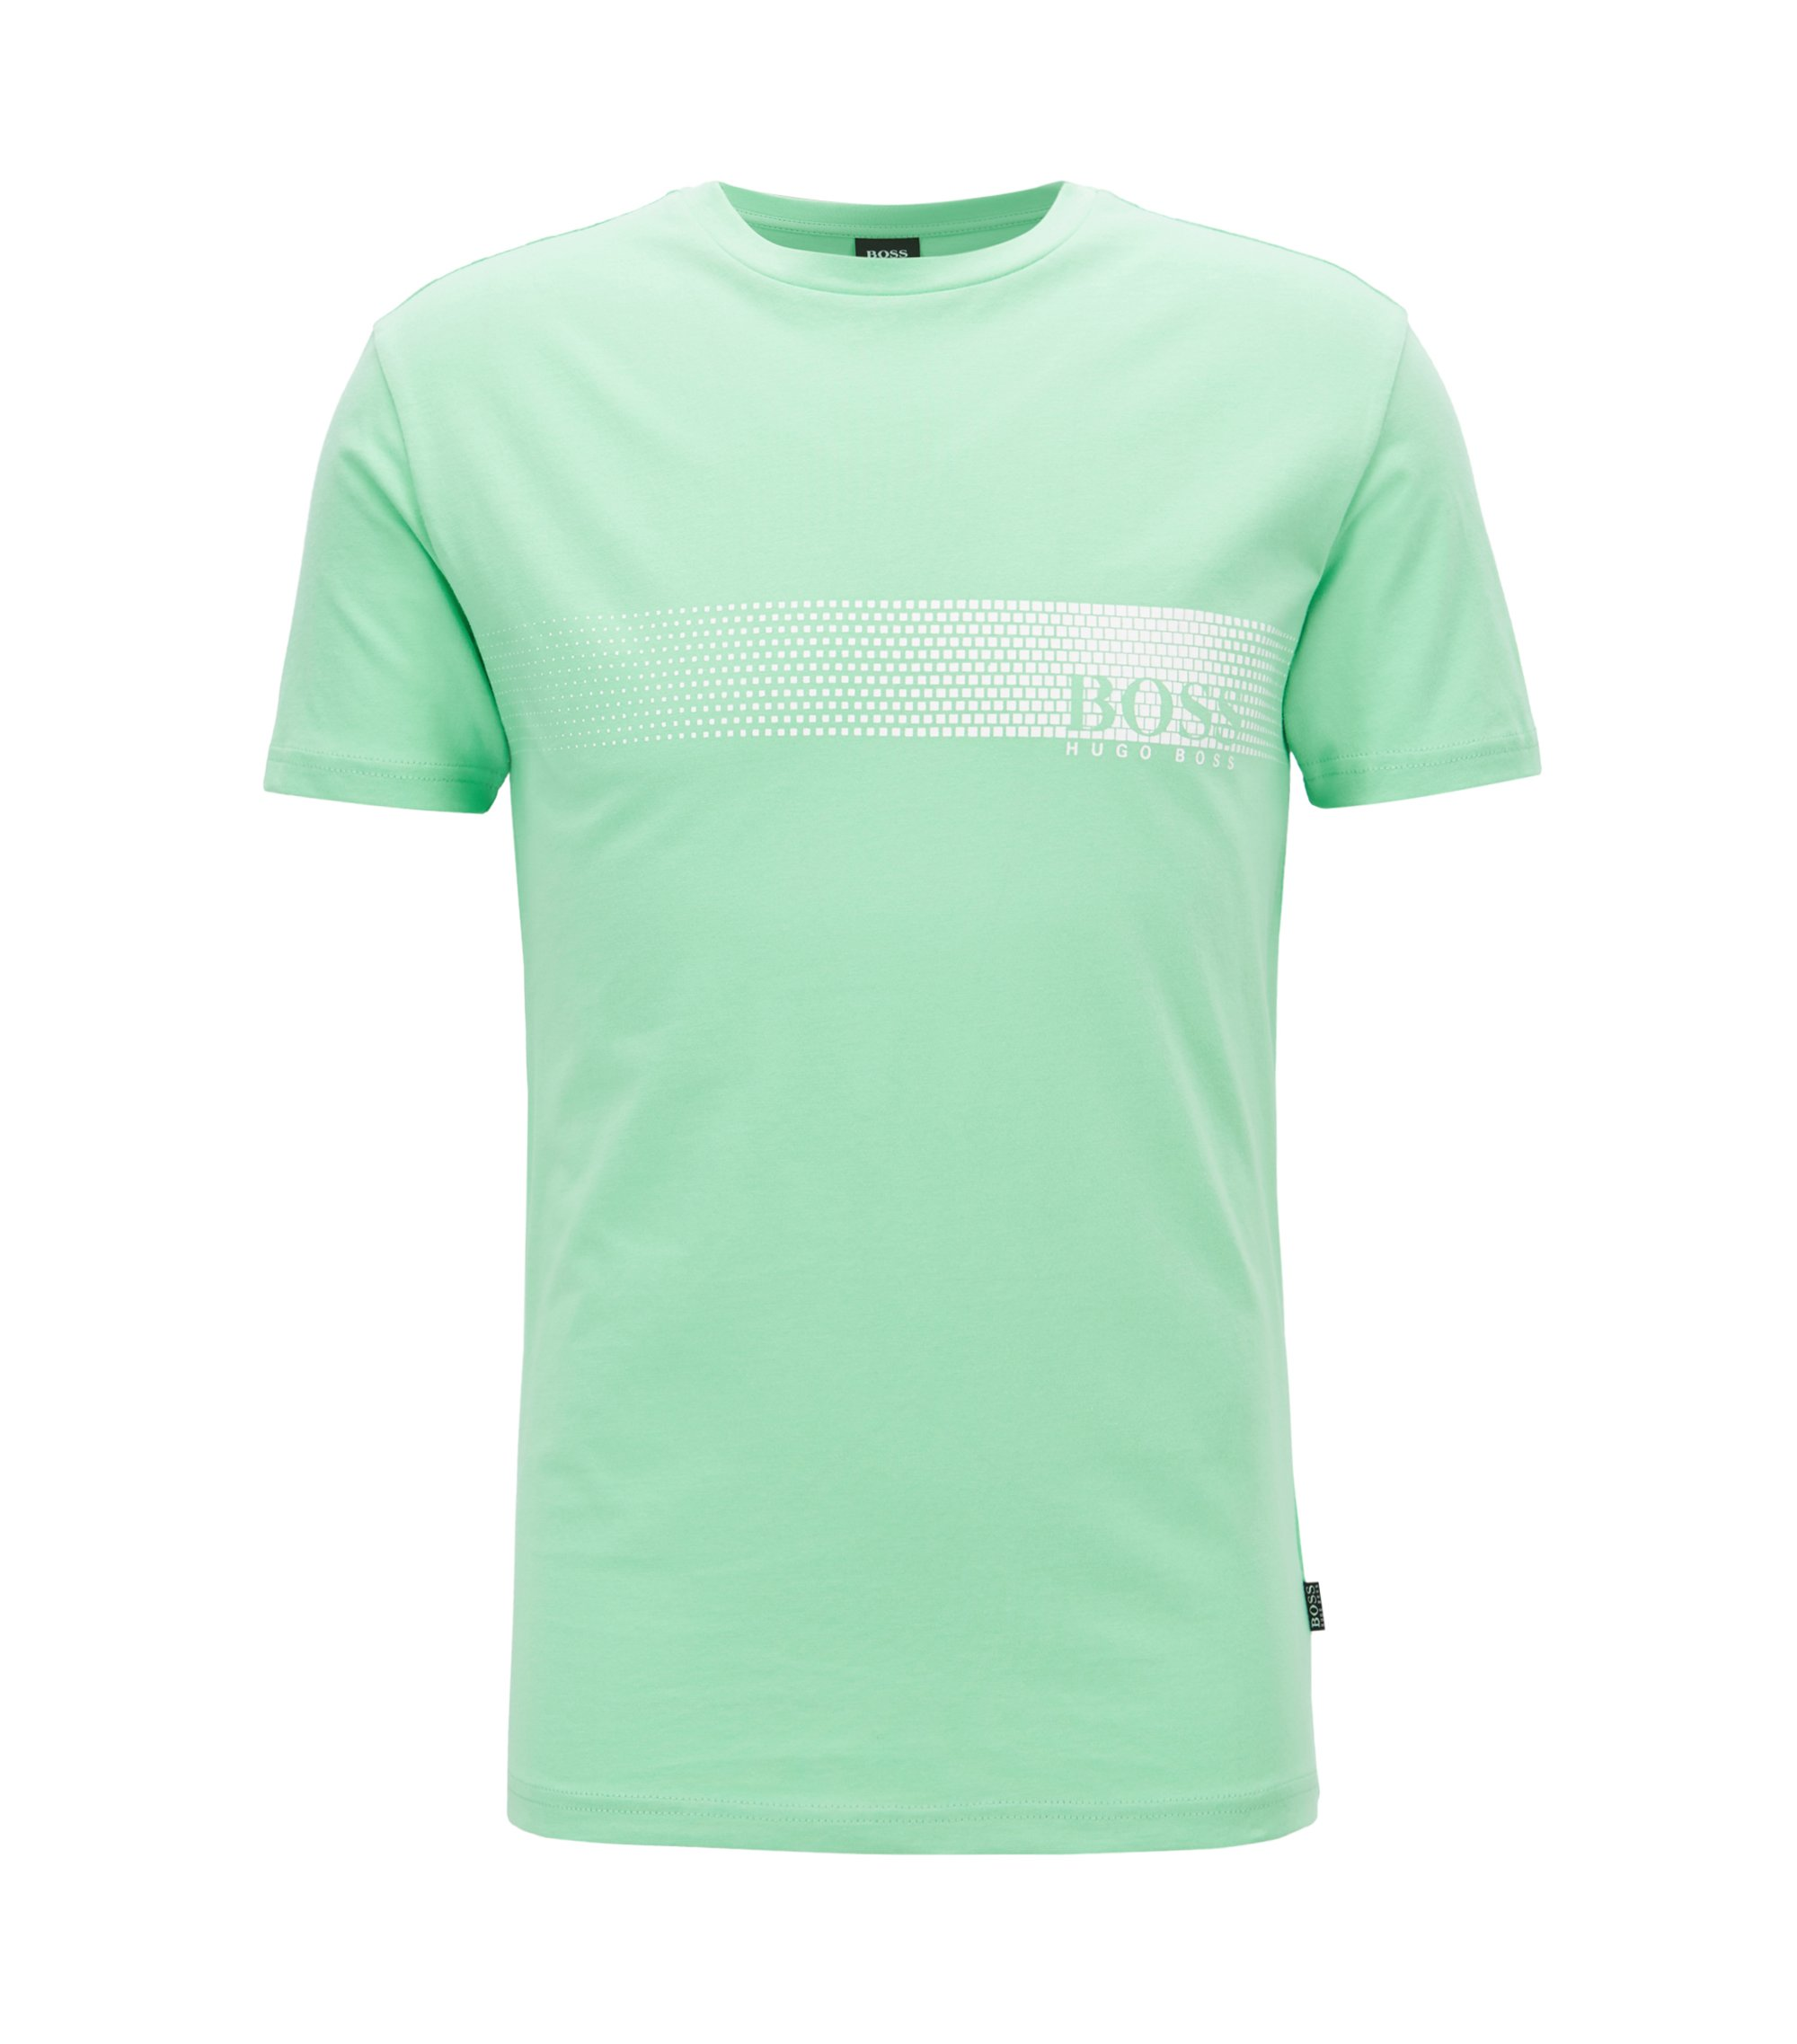 T-shirt anti-UV in cotone con logo, Calce